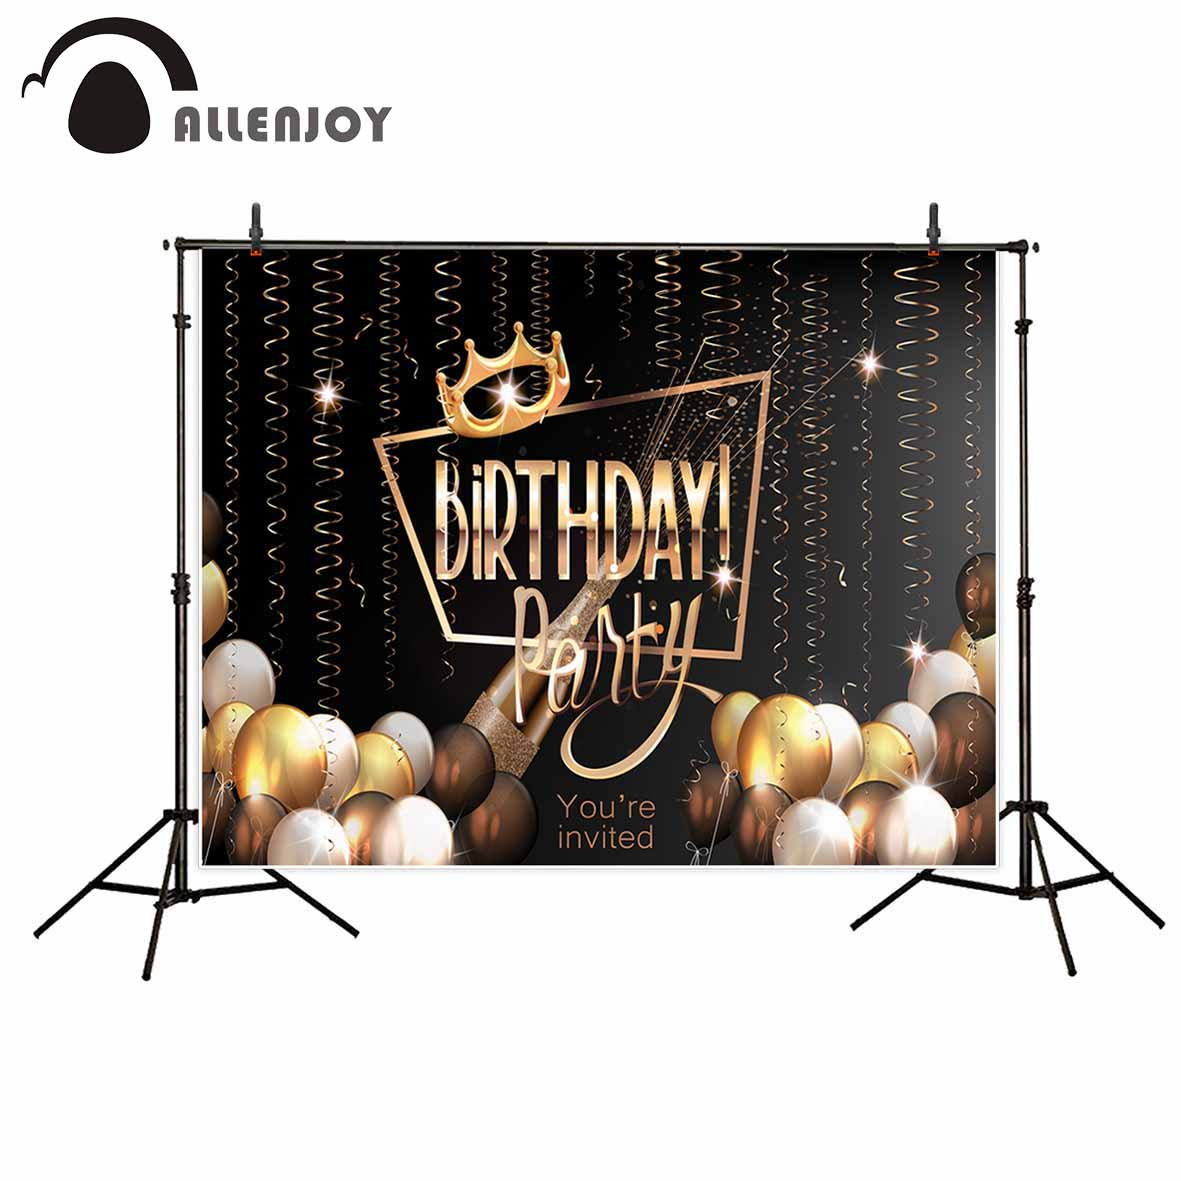 Allenjoy vinyl photographic background Ball Ribbon Birthday Crown Custom Party new backdrop photocall photo printed customize allenjoy photography background baby shower step and repeat backdrop custom made any style wedding birthday photo booth backdrop